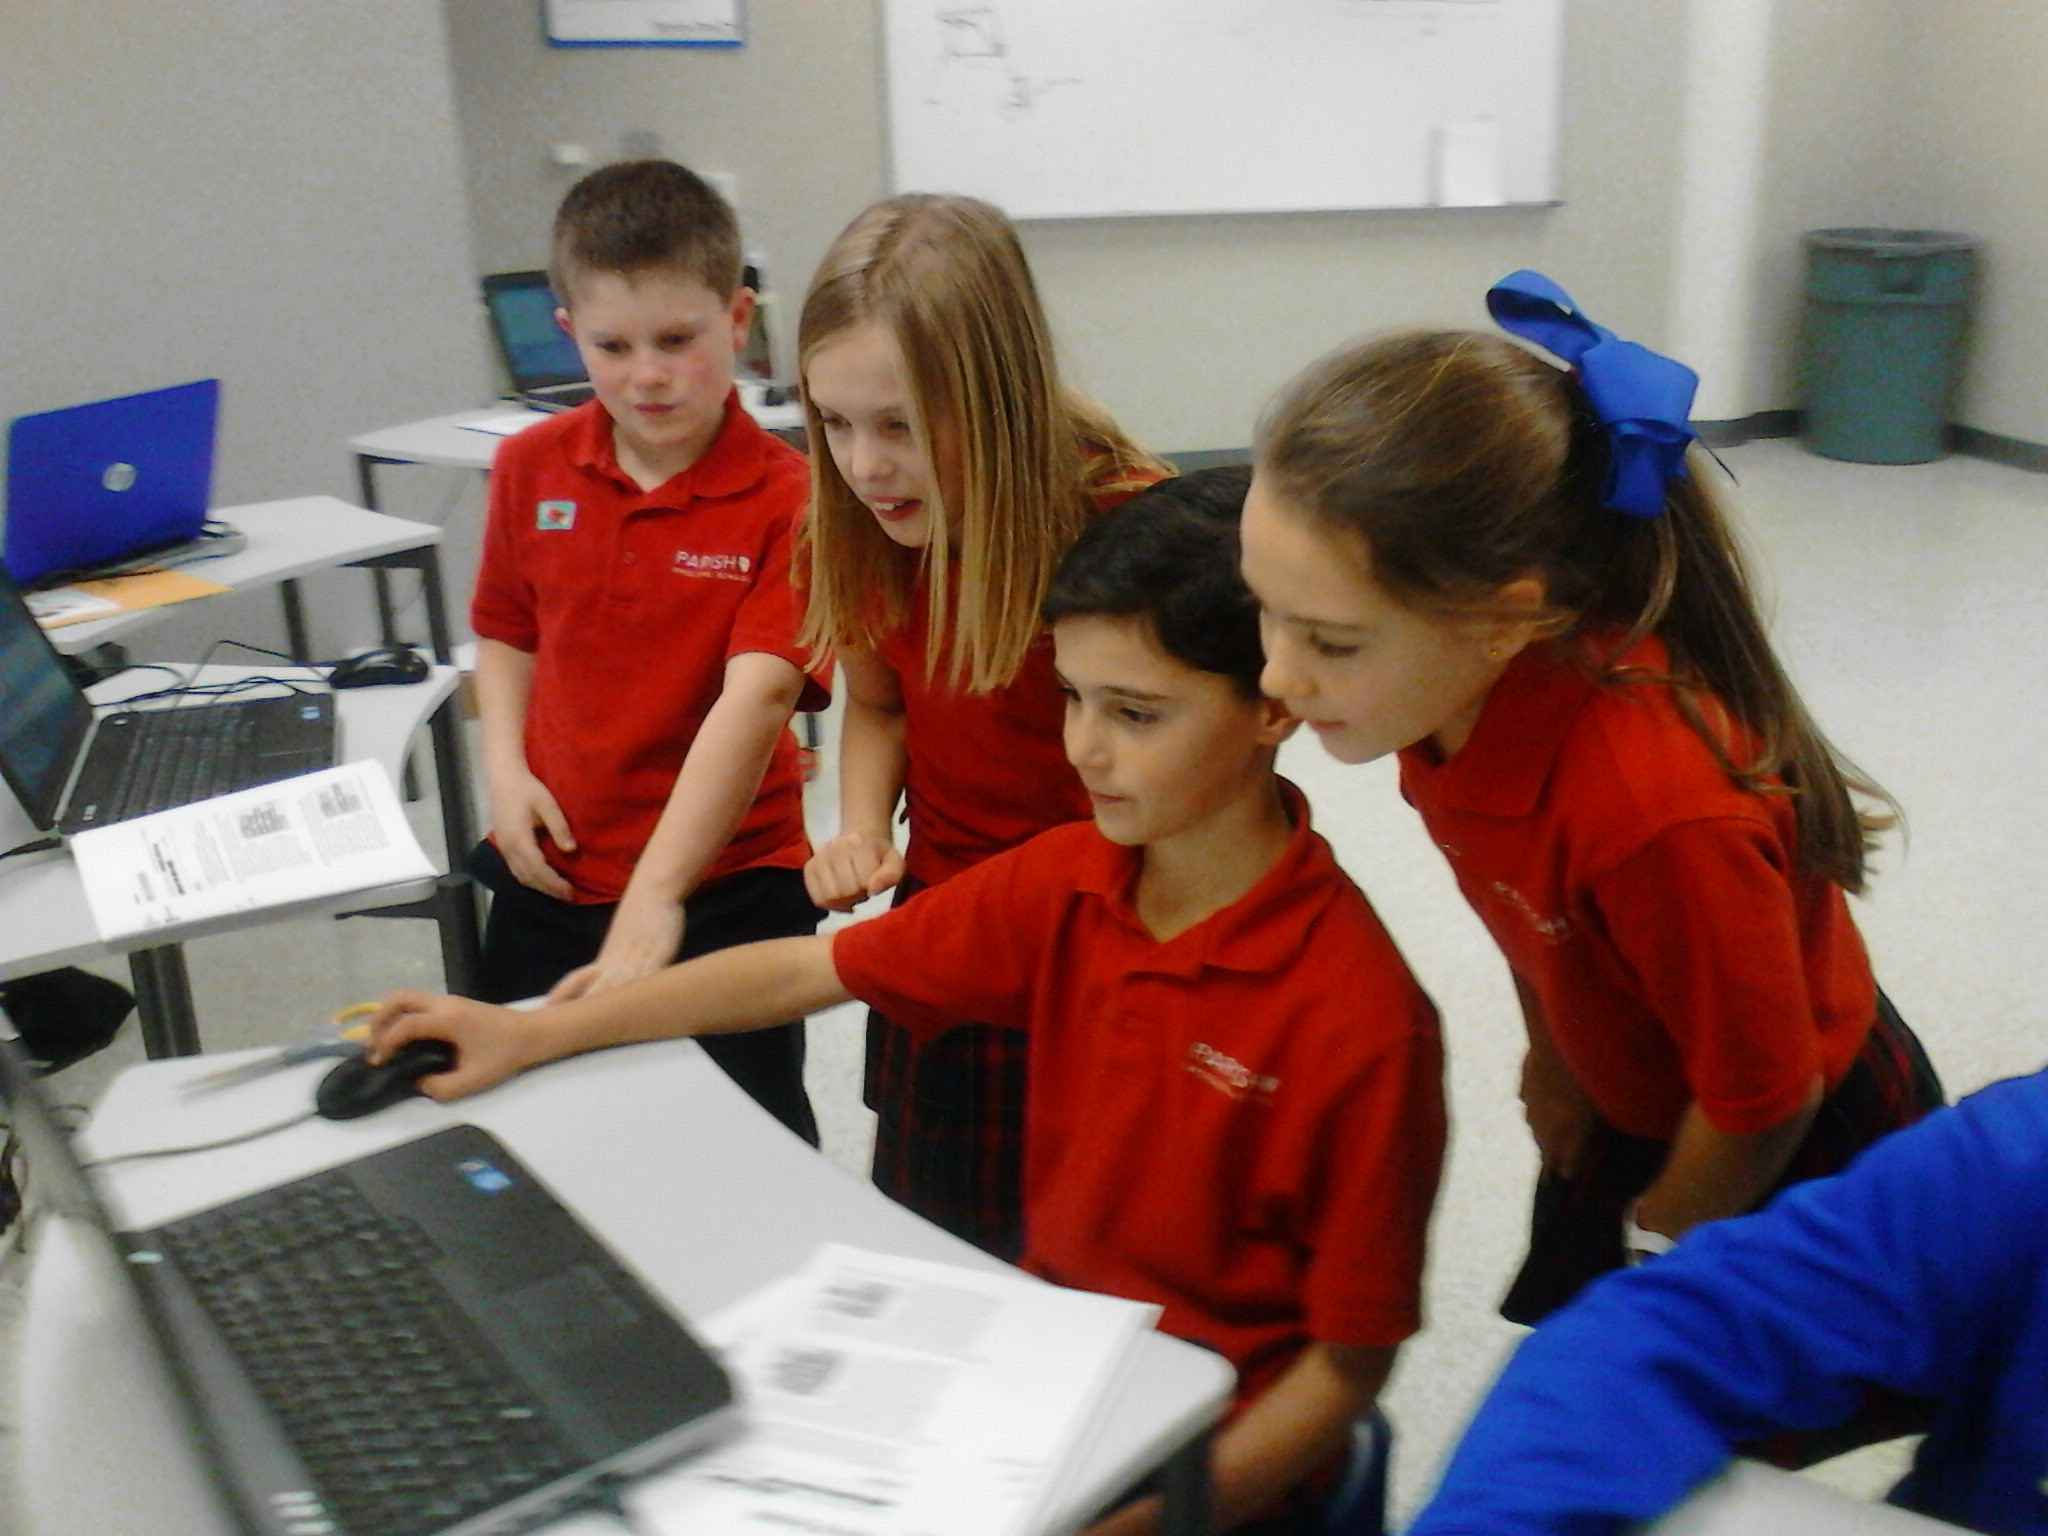 Teamwork using Lego Digital Designer to make models in simple Lego-based CAD.